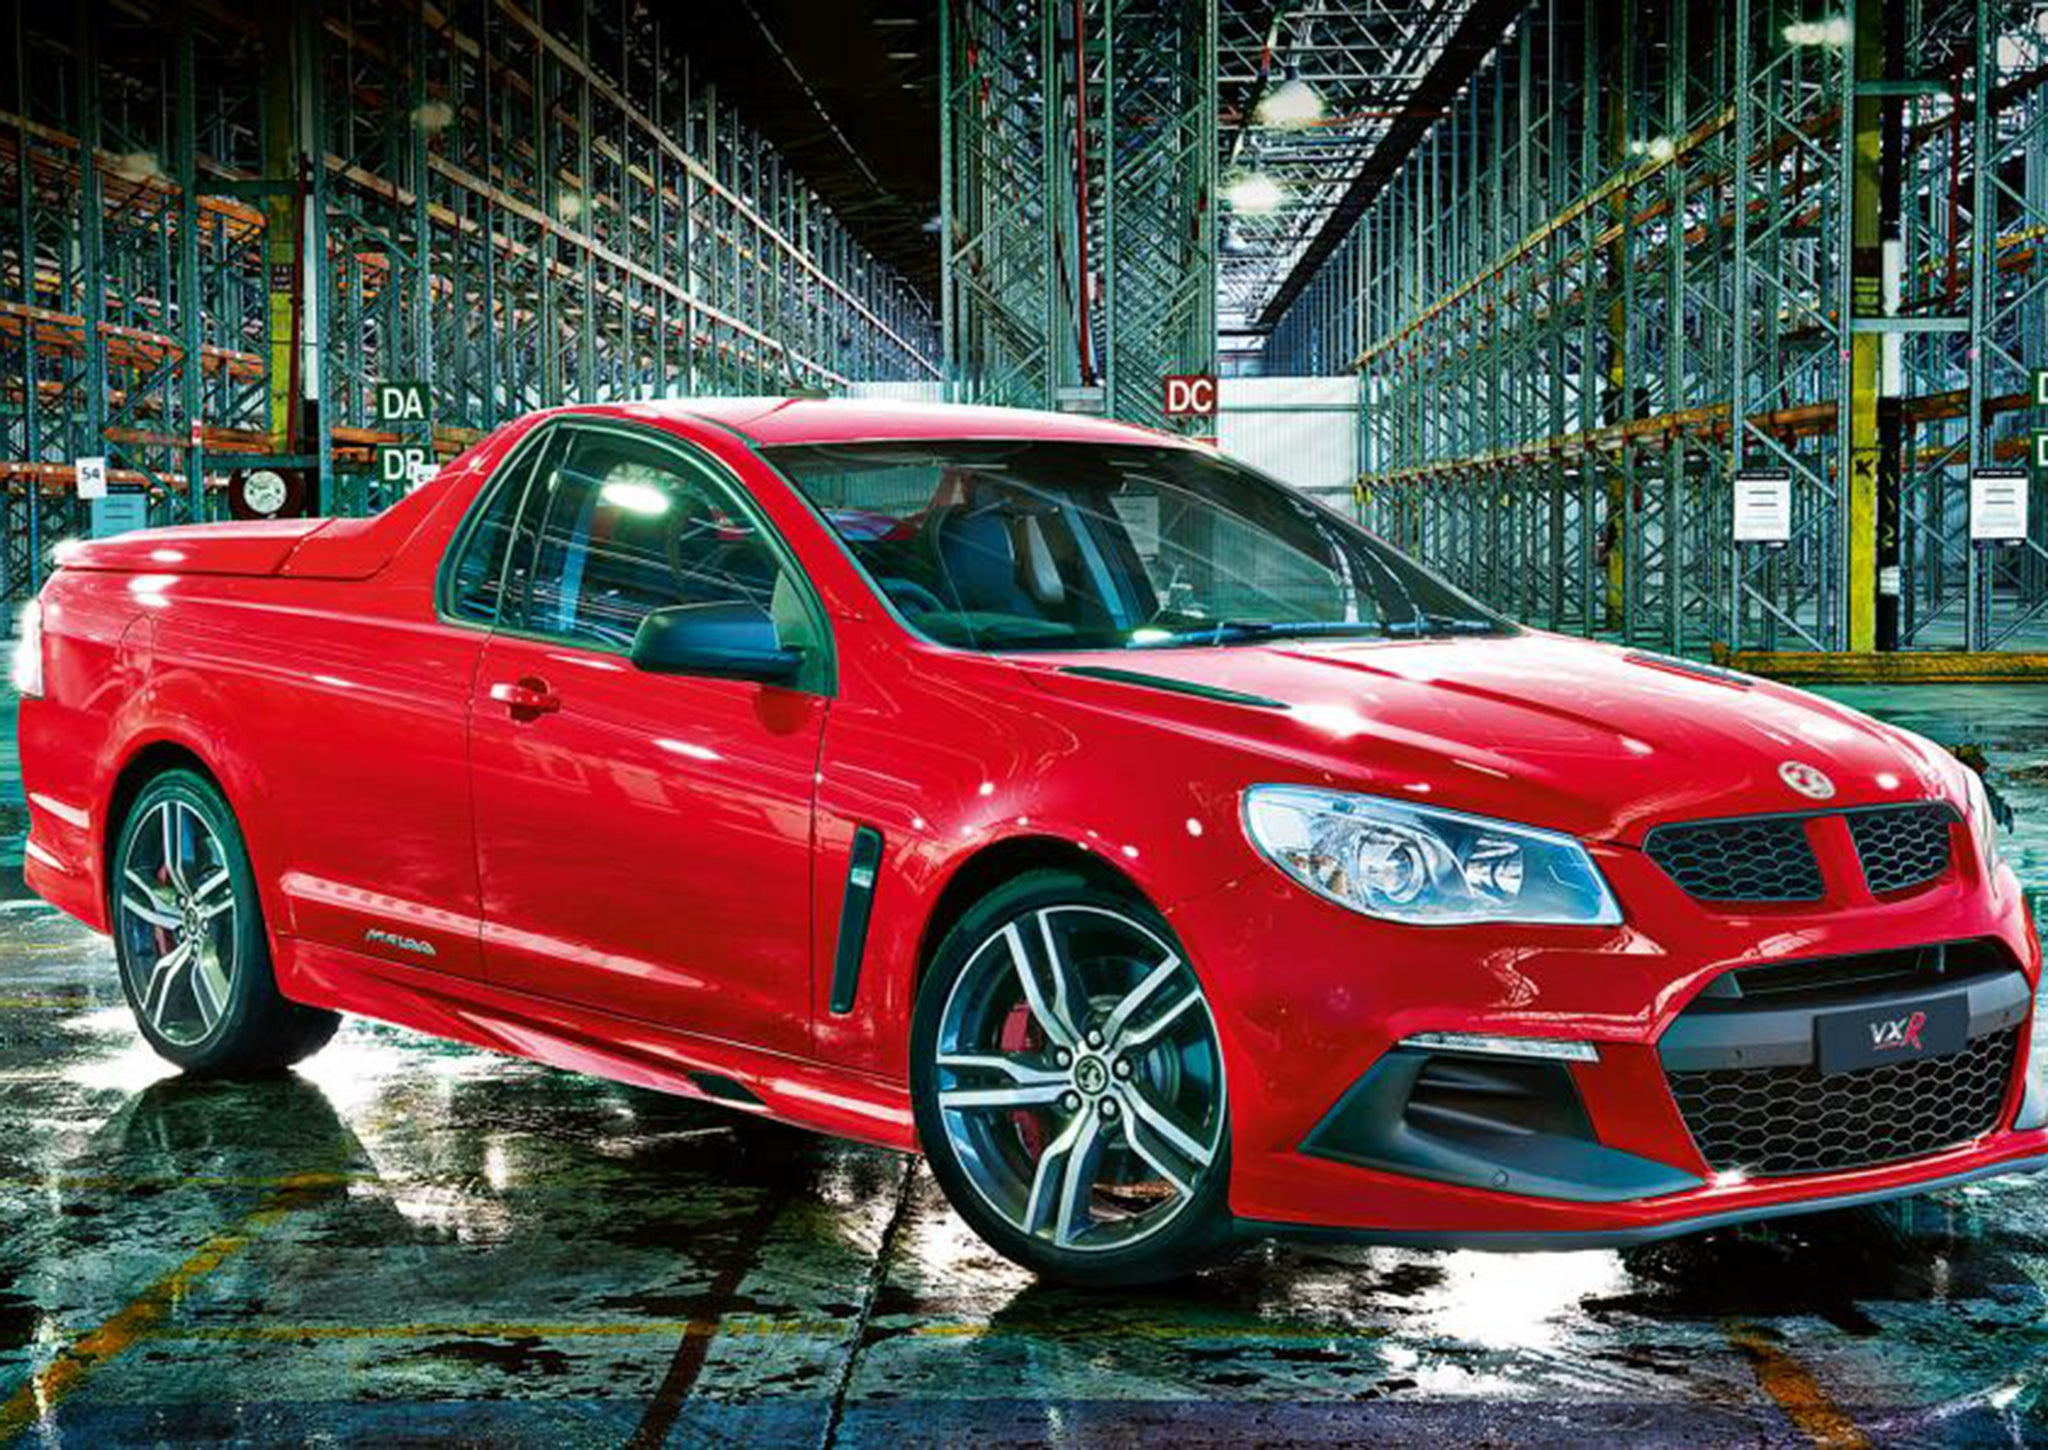 vauxhall maloo 529bhp pick up gives new meaning to u0027monster truck